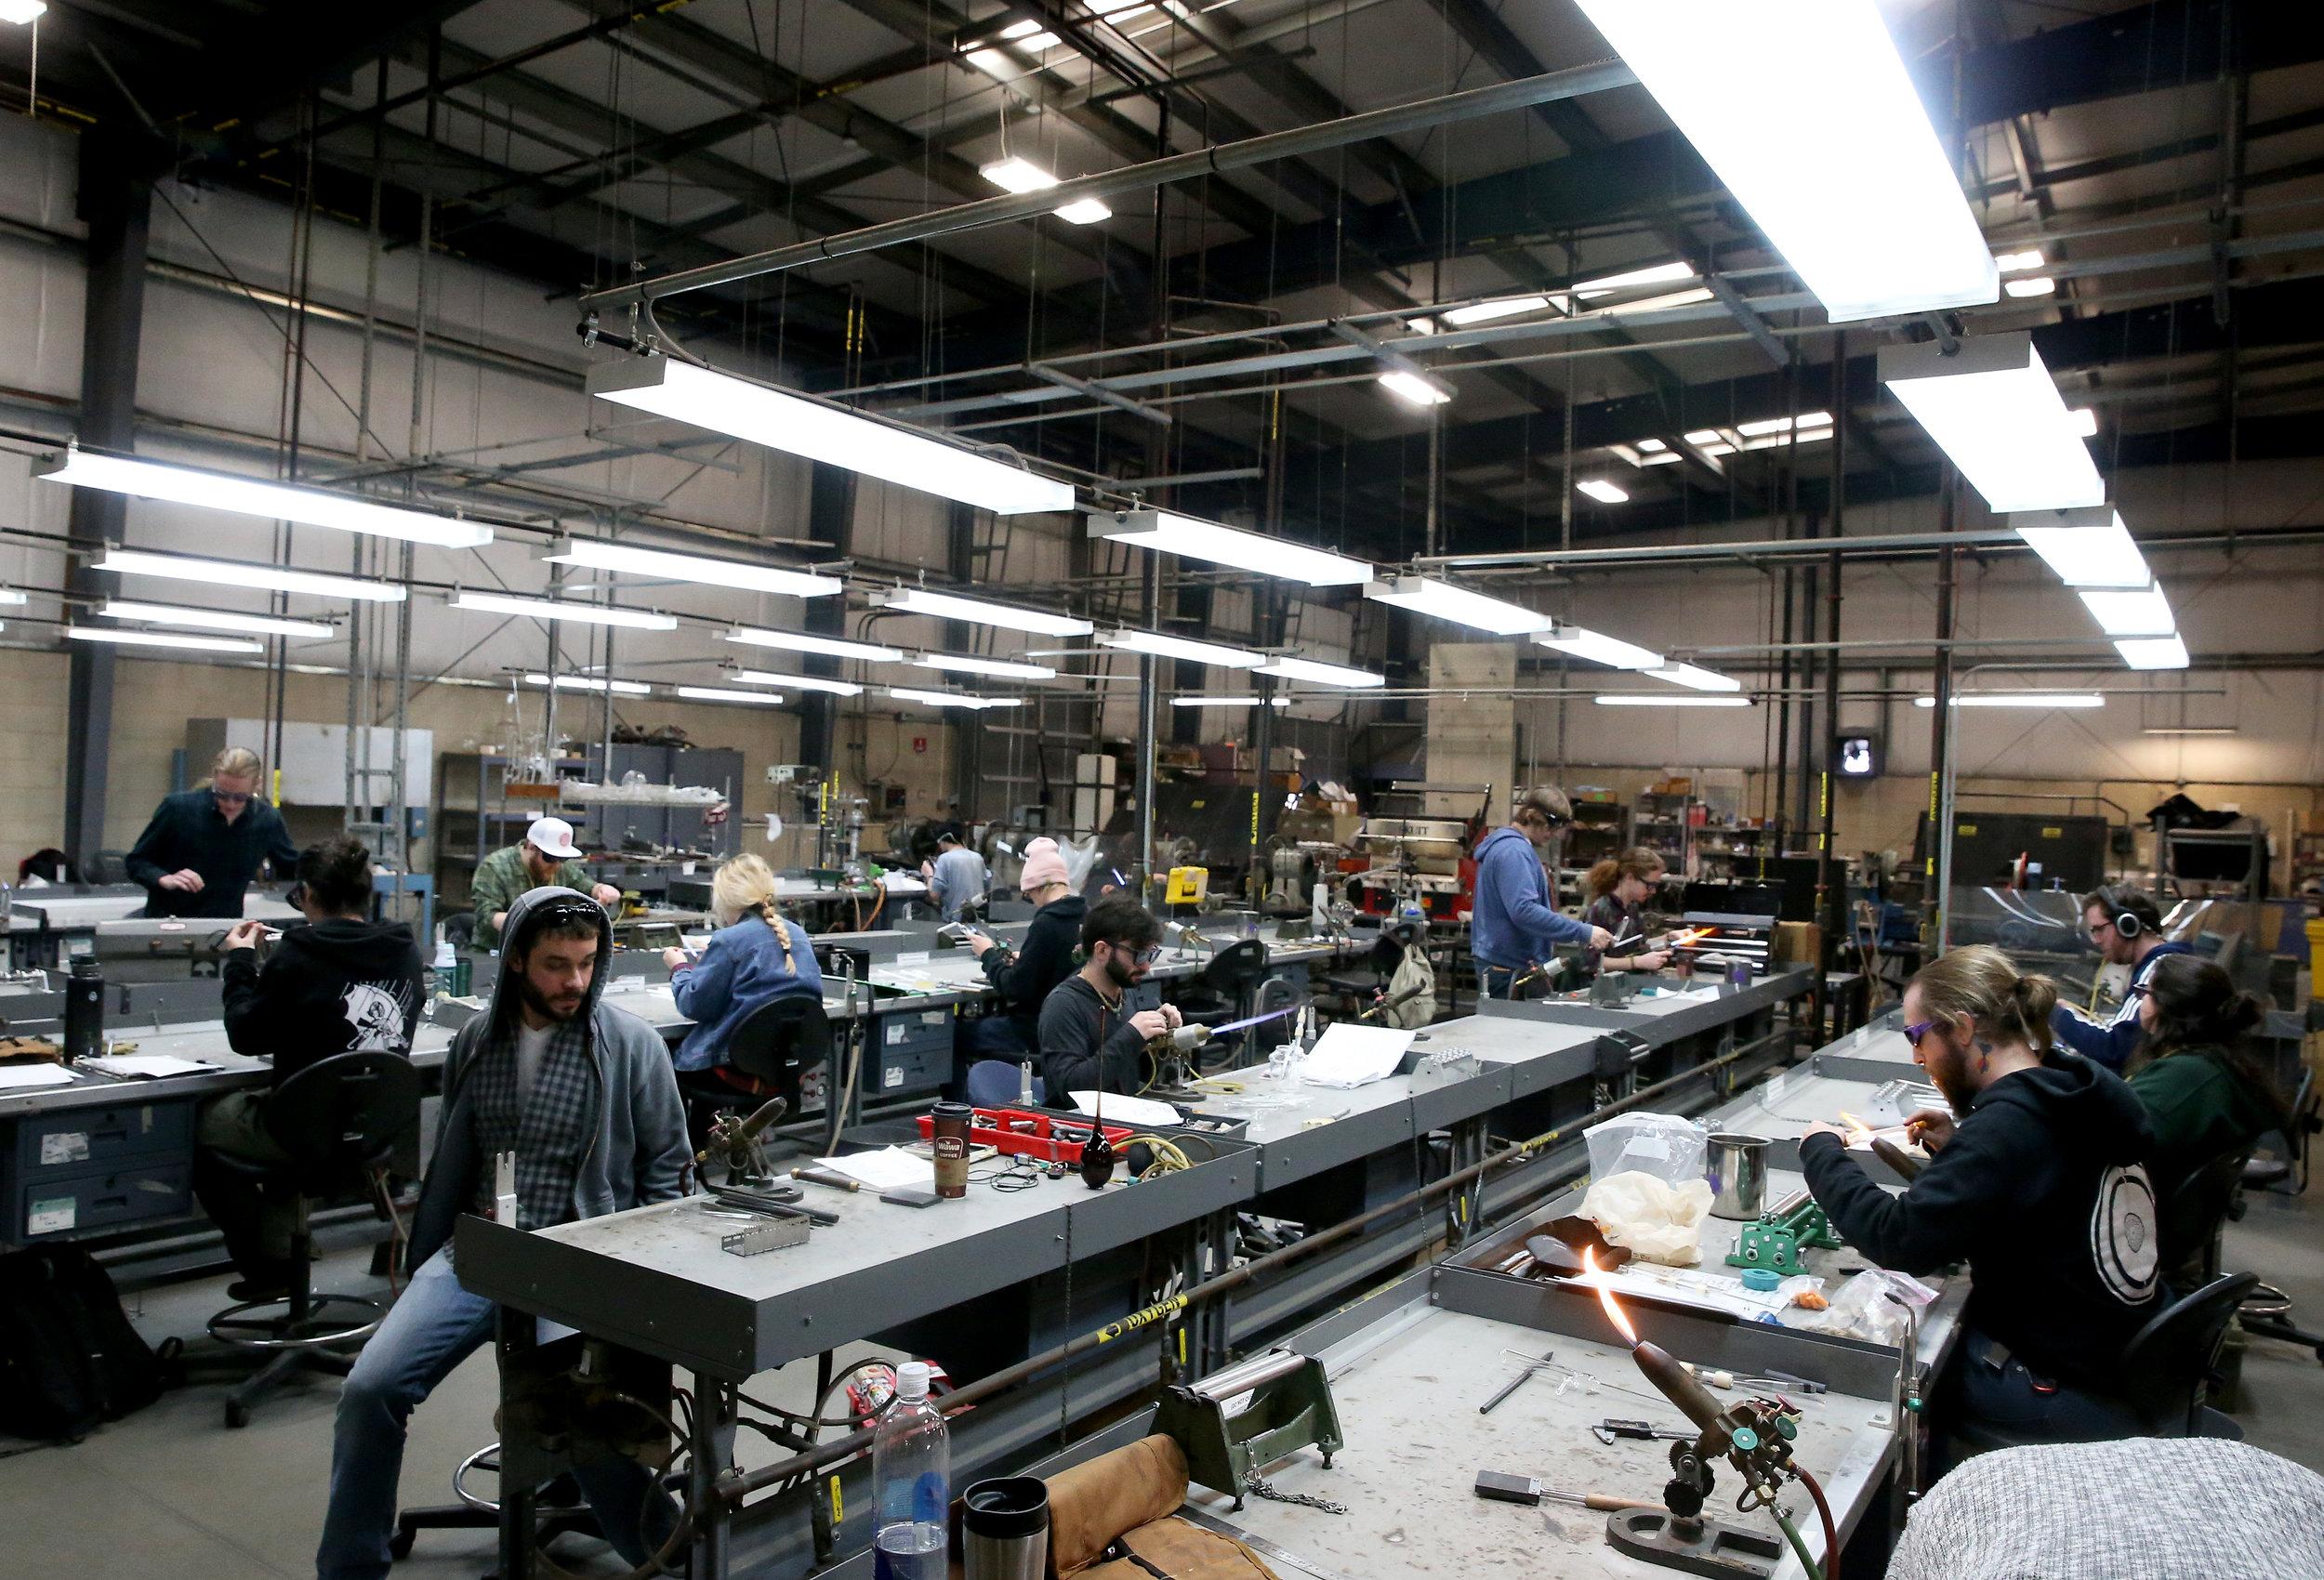 Paul J. Stankard Studio Lab, the largest of any academic institution, allows for instruction of both scientific and creating flameworking at both the bench and on the lathe.